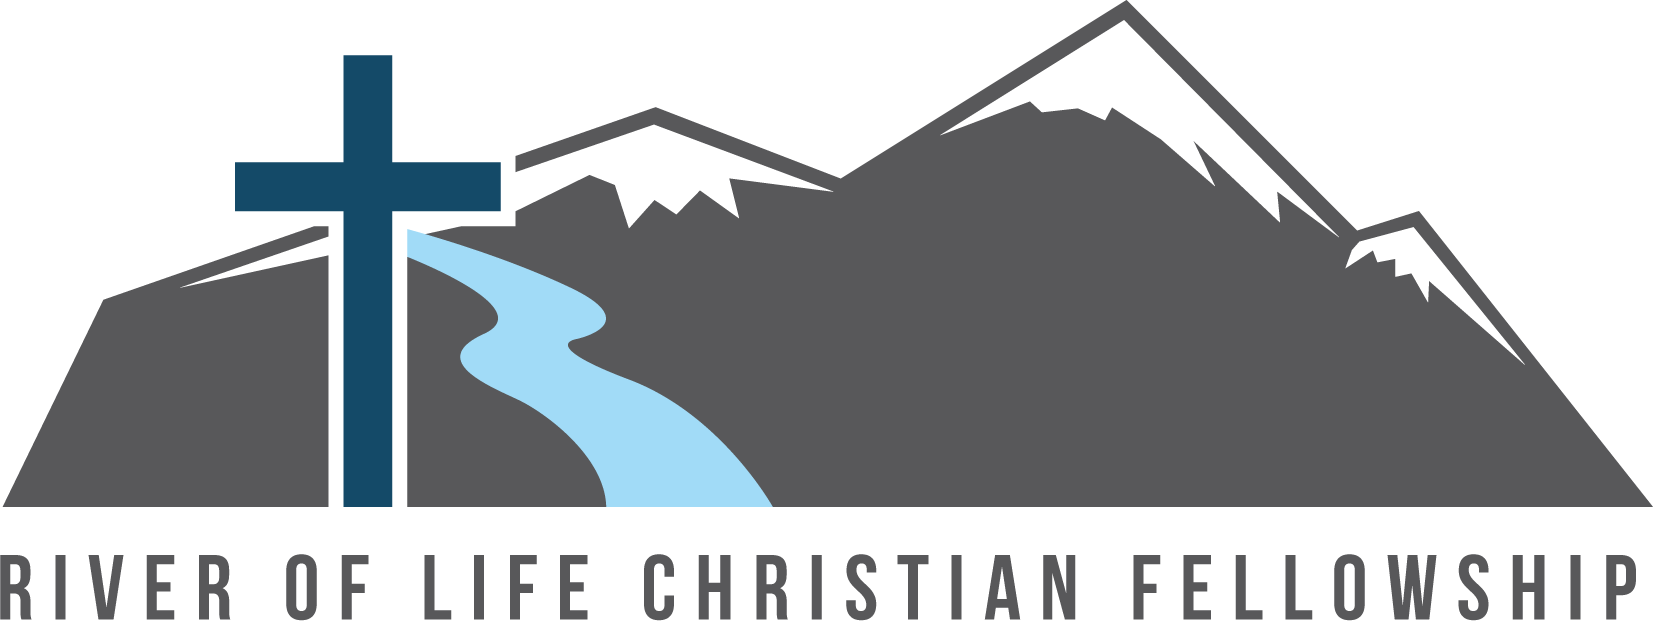 River of Life Christian Fellowship